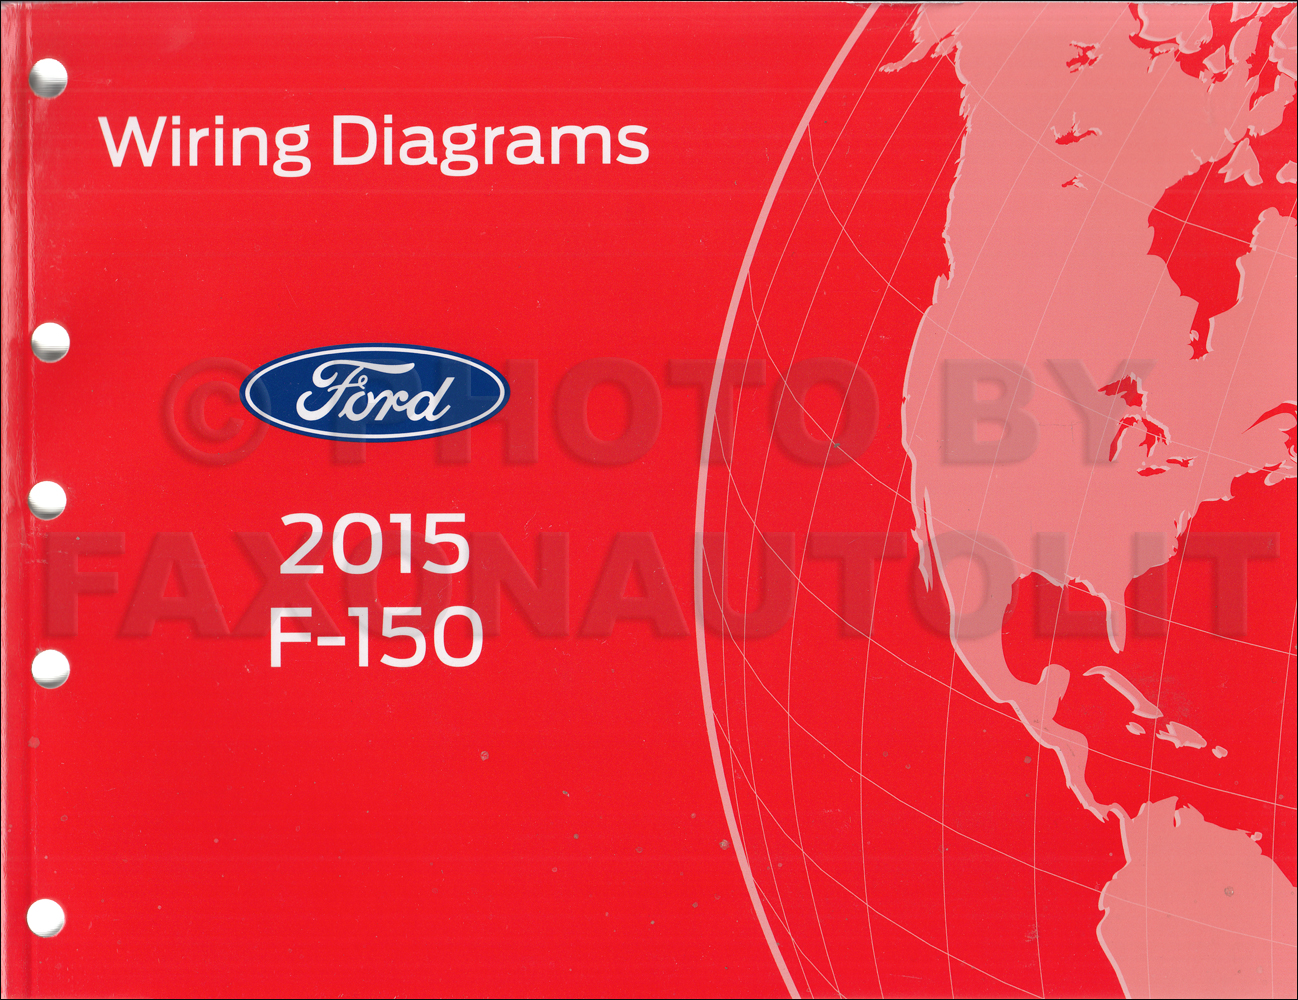 Wiring Diagrams For Ford F150